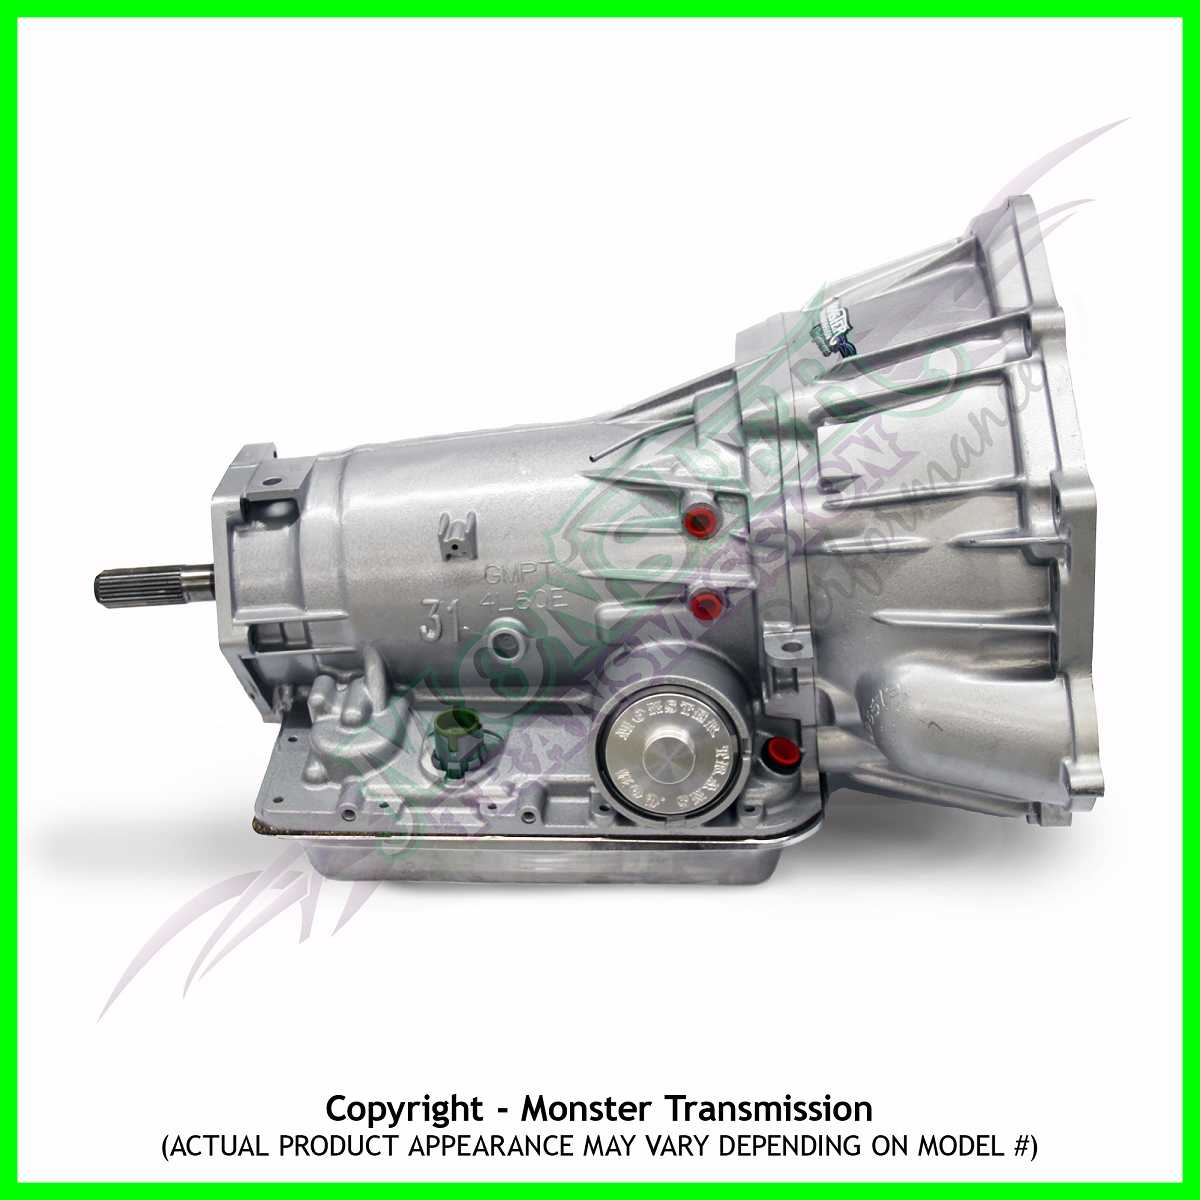 Monster Transmission 4L60E